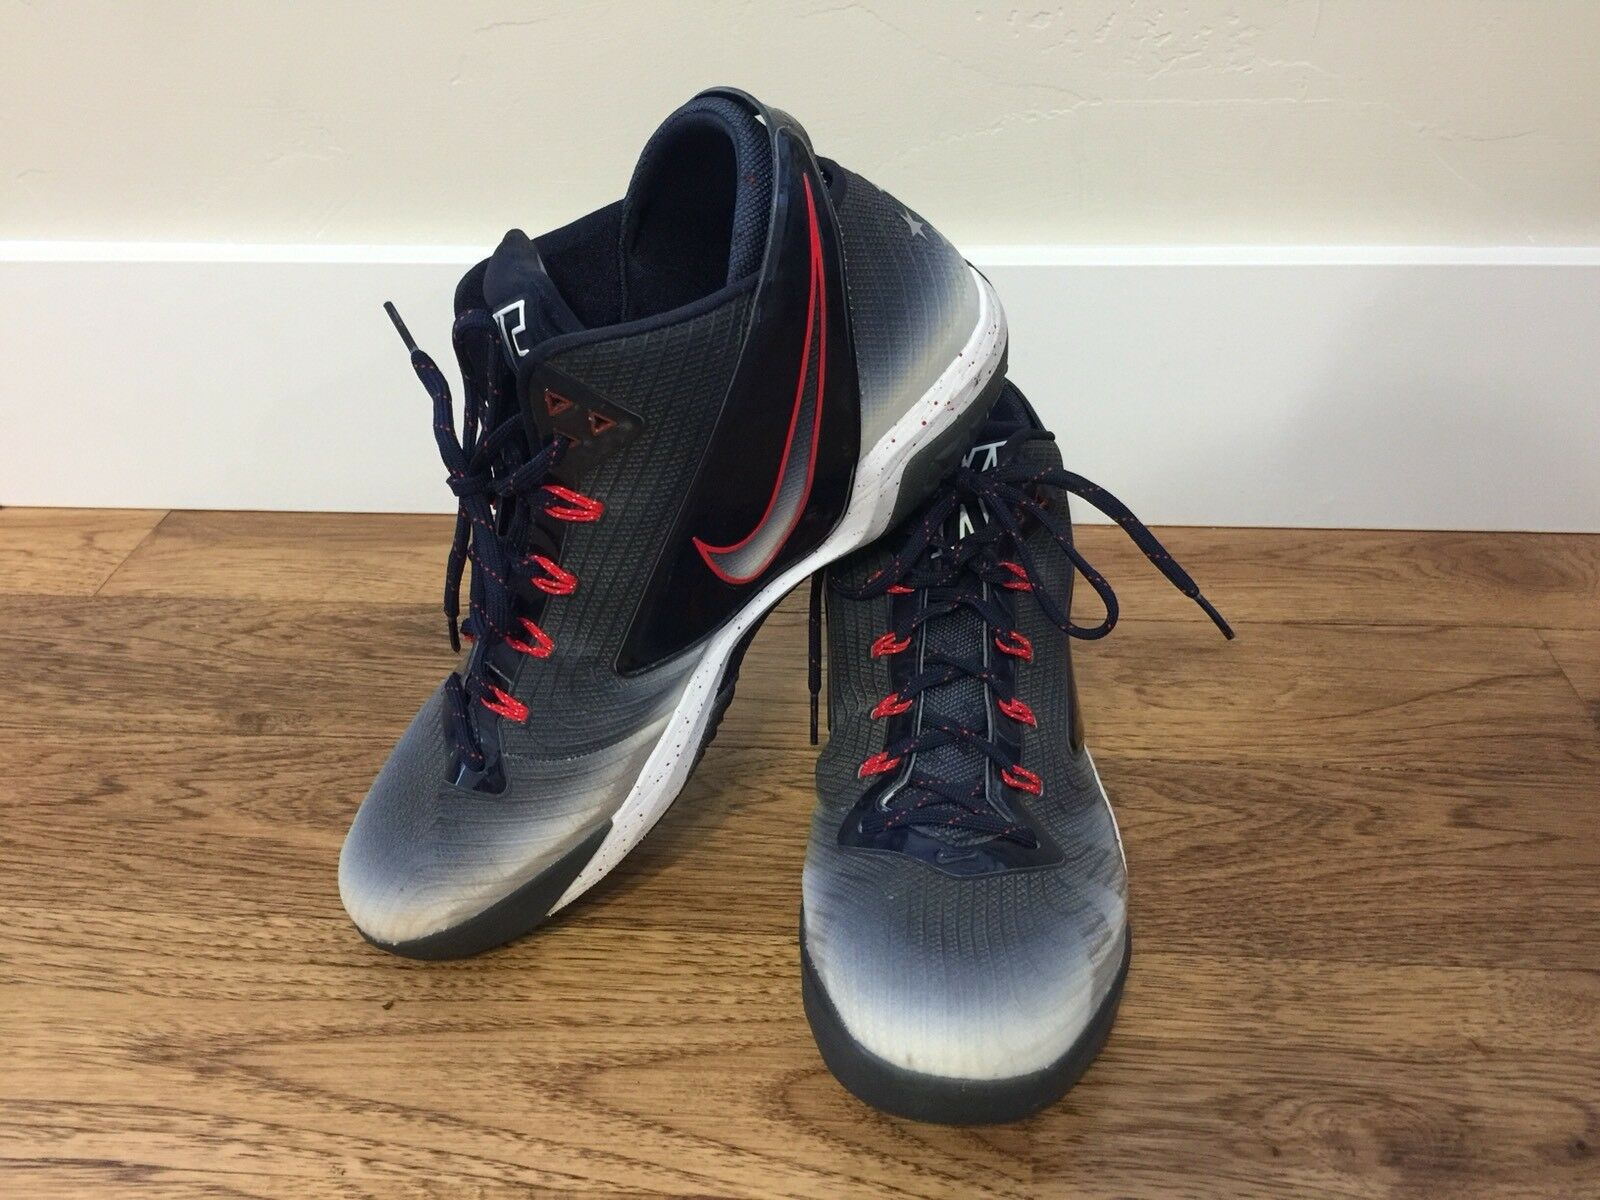 DS Nike Zoom Field General USA 12 Mens Trainer Shoes Size 12 USA 7e1ce9